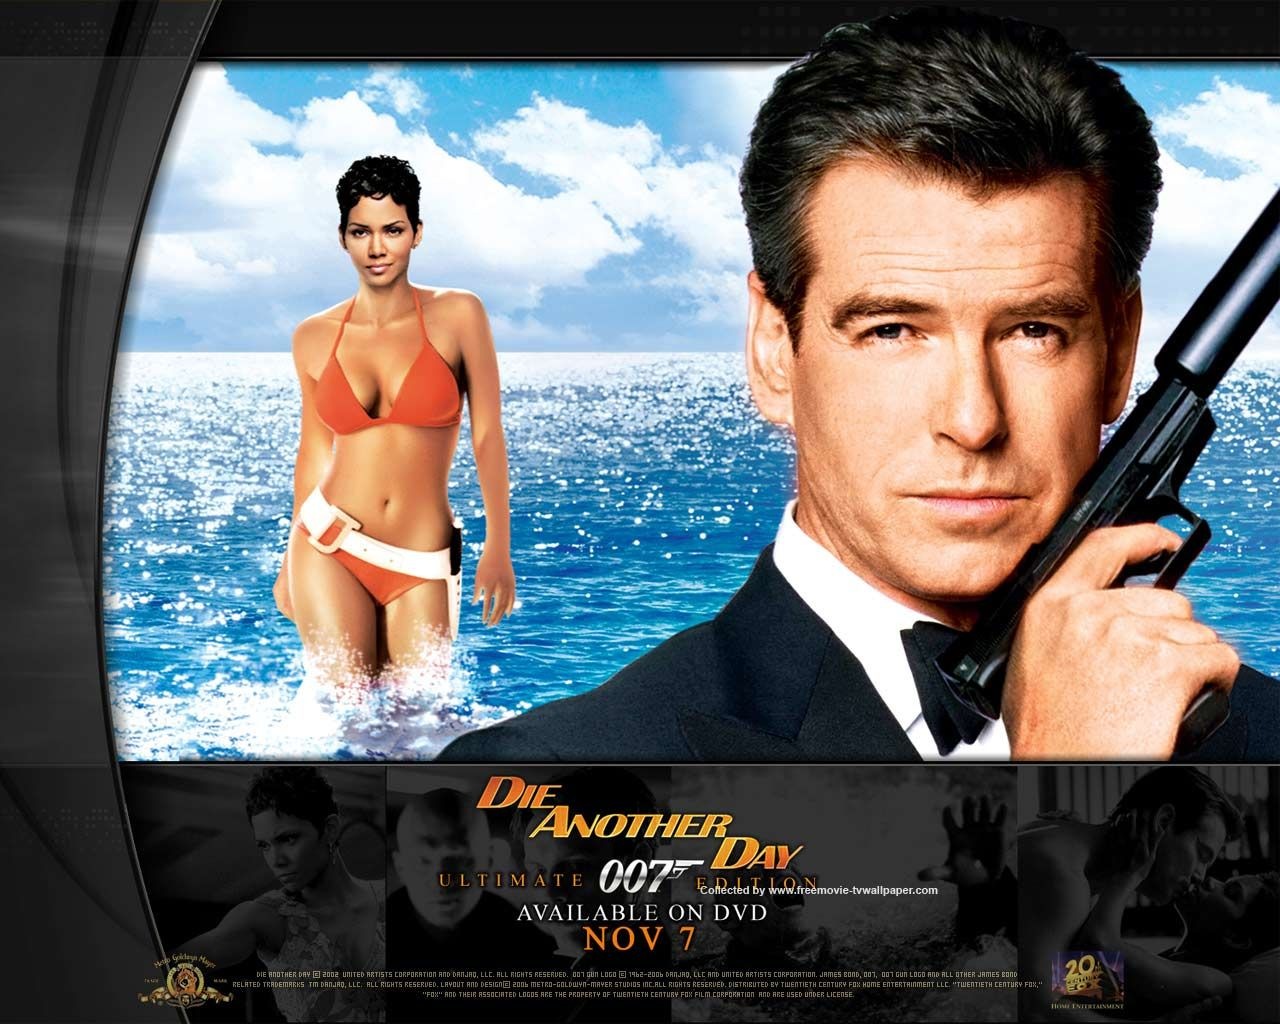 james bond movies die another day - Google Search